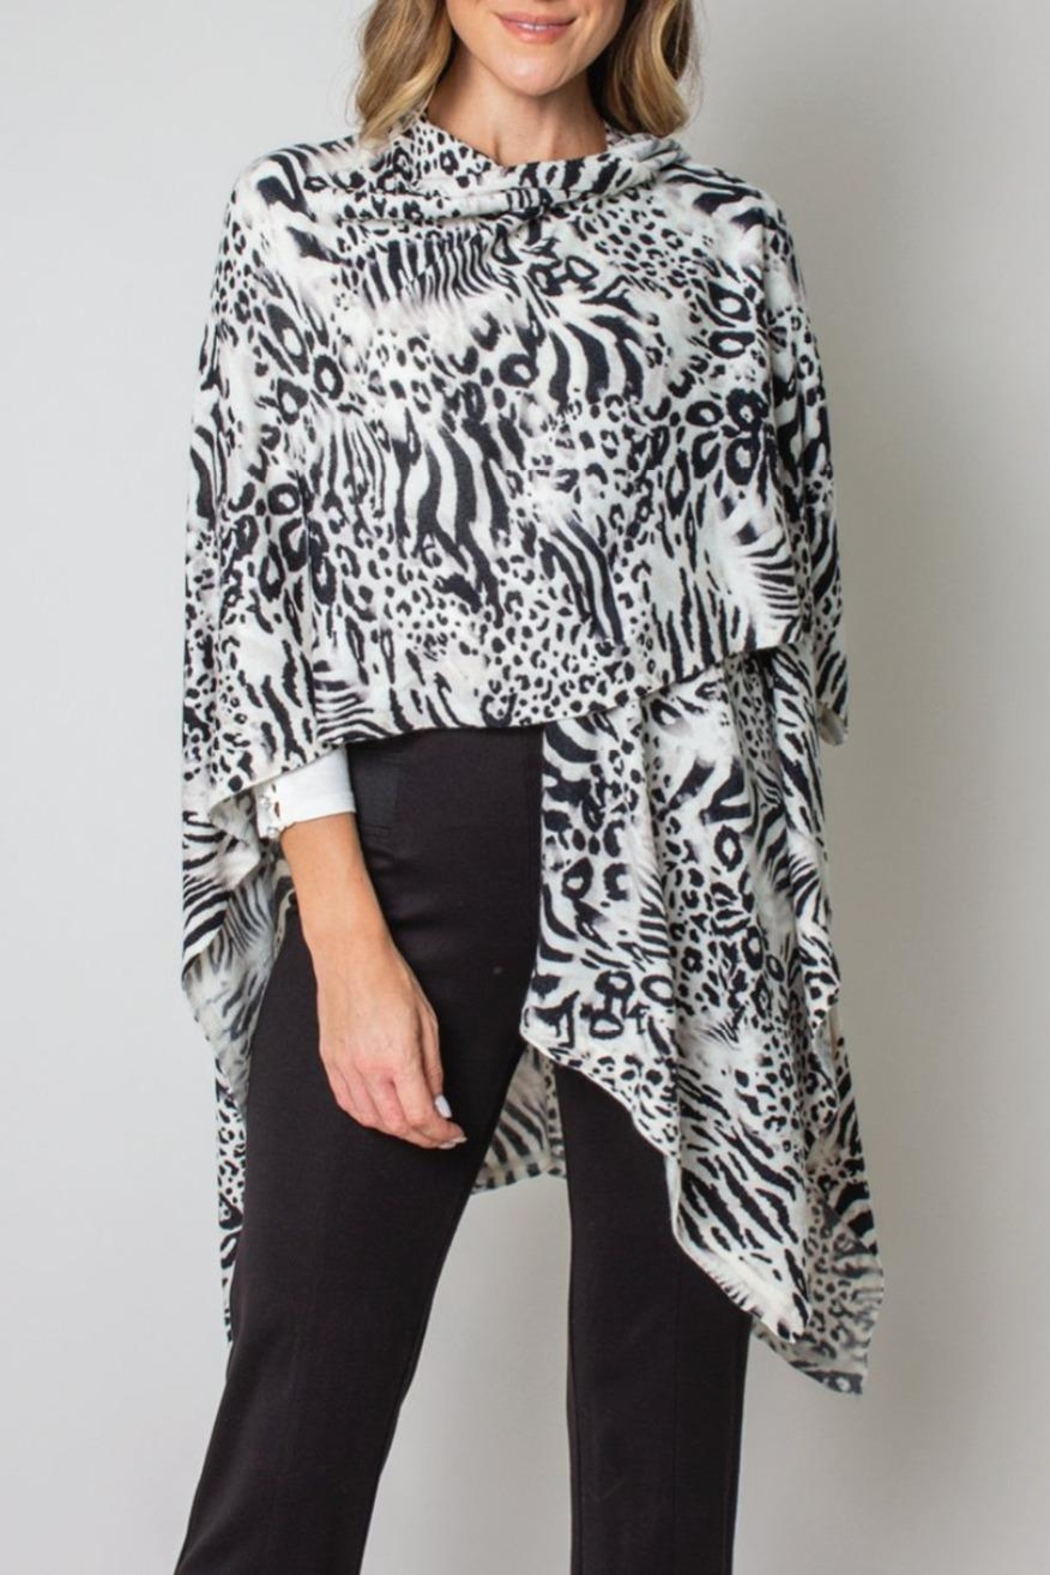 Simply Noelle Bordeaux Cardi Wrap Poncho Black And White Leopard - Side Cropped Image